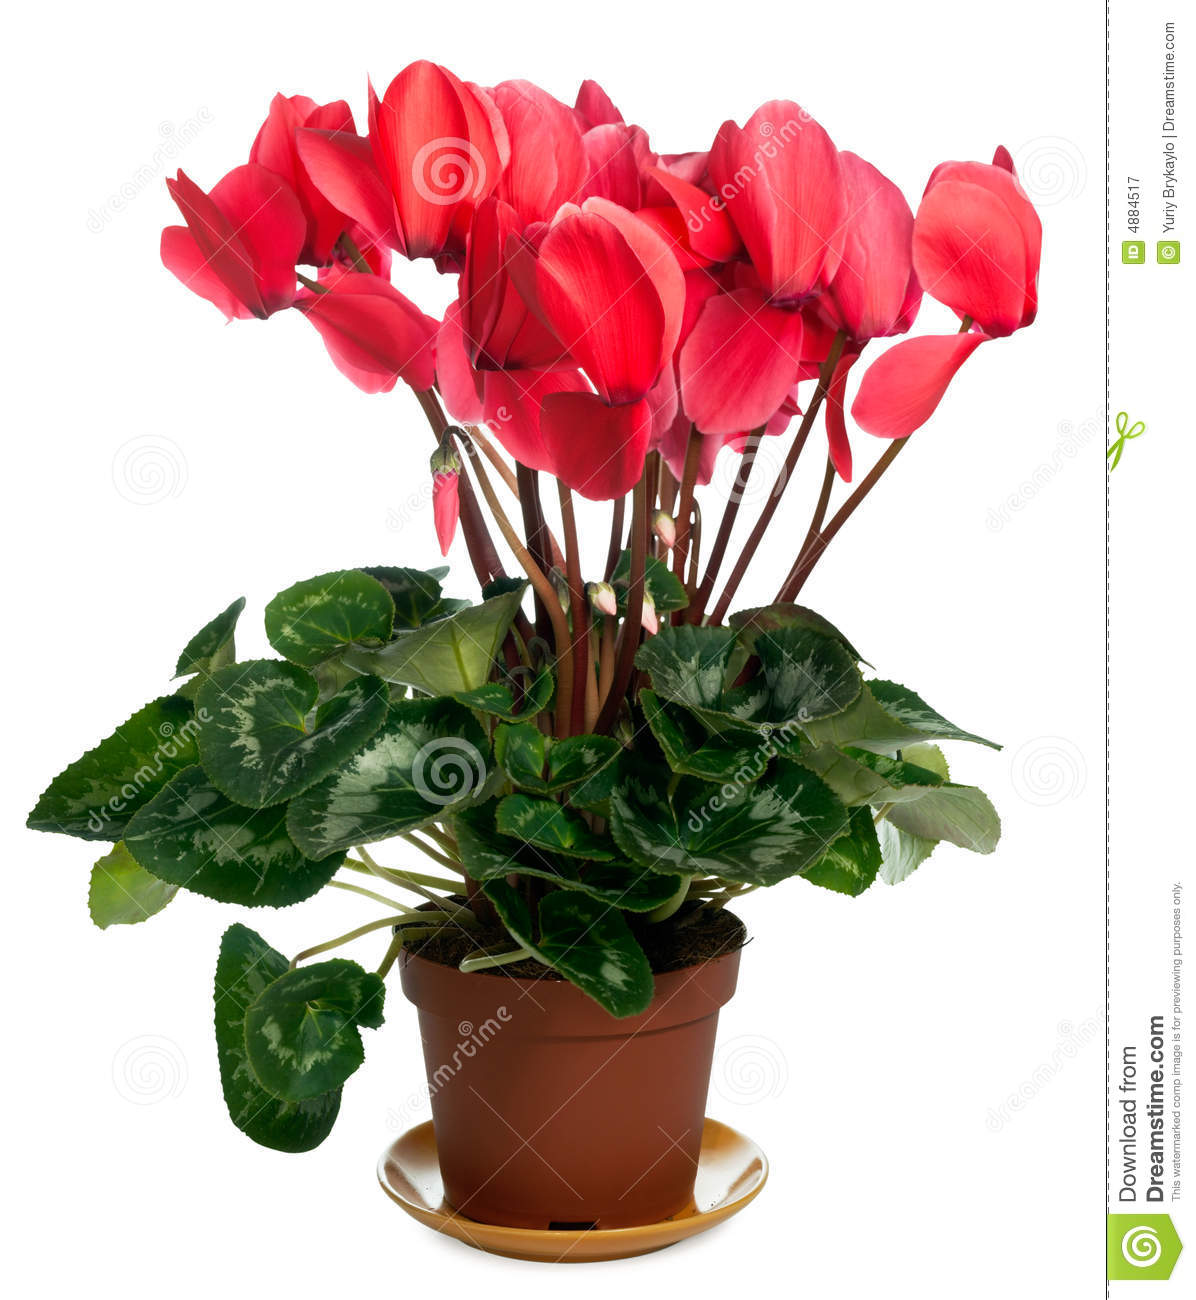 Cyclamen Plant Royalty Free Stock Photography Image 4884517